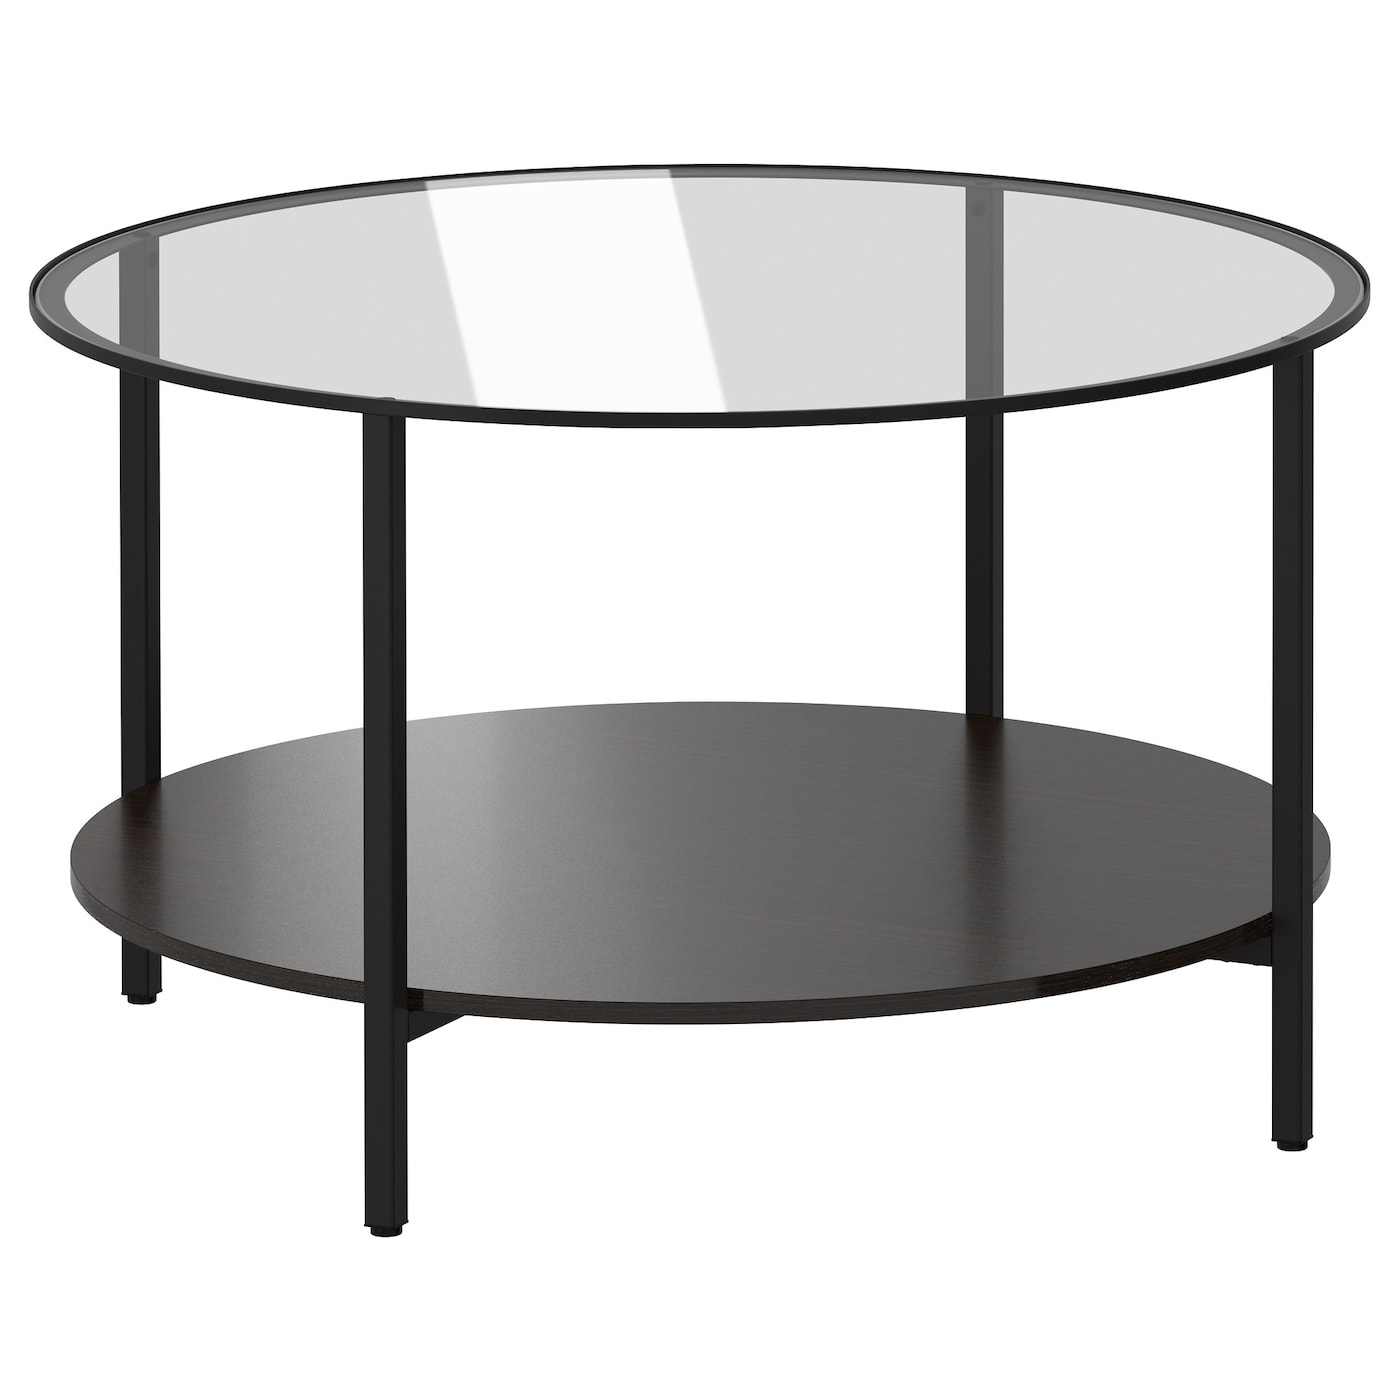 Ikea table noire table basse table basse ikea noir lovely - Ikea table noire ...